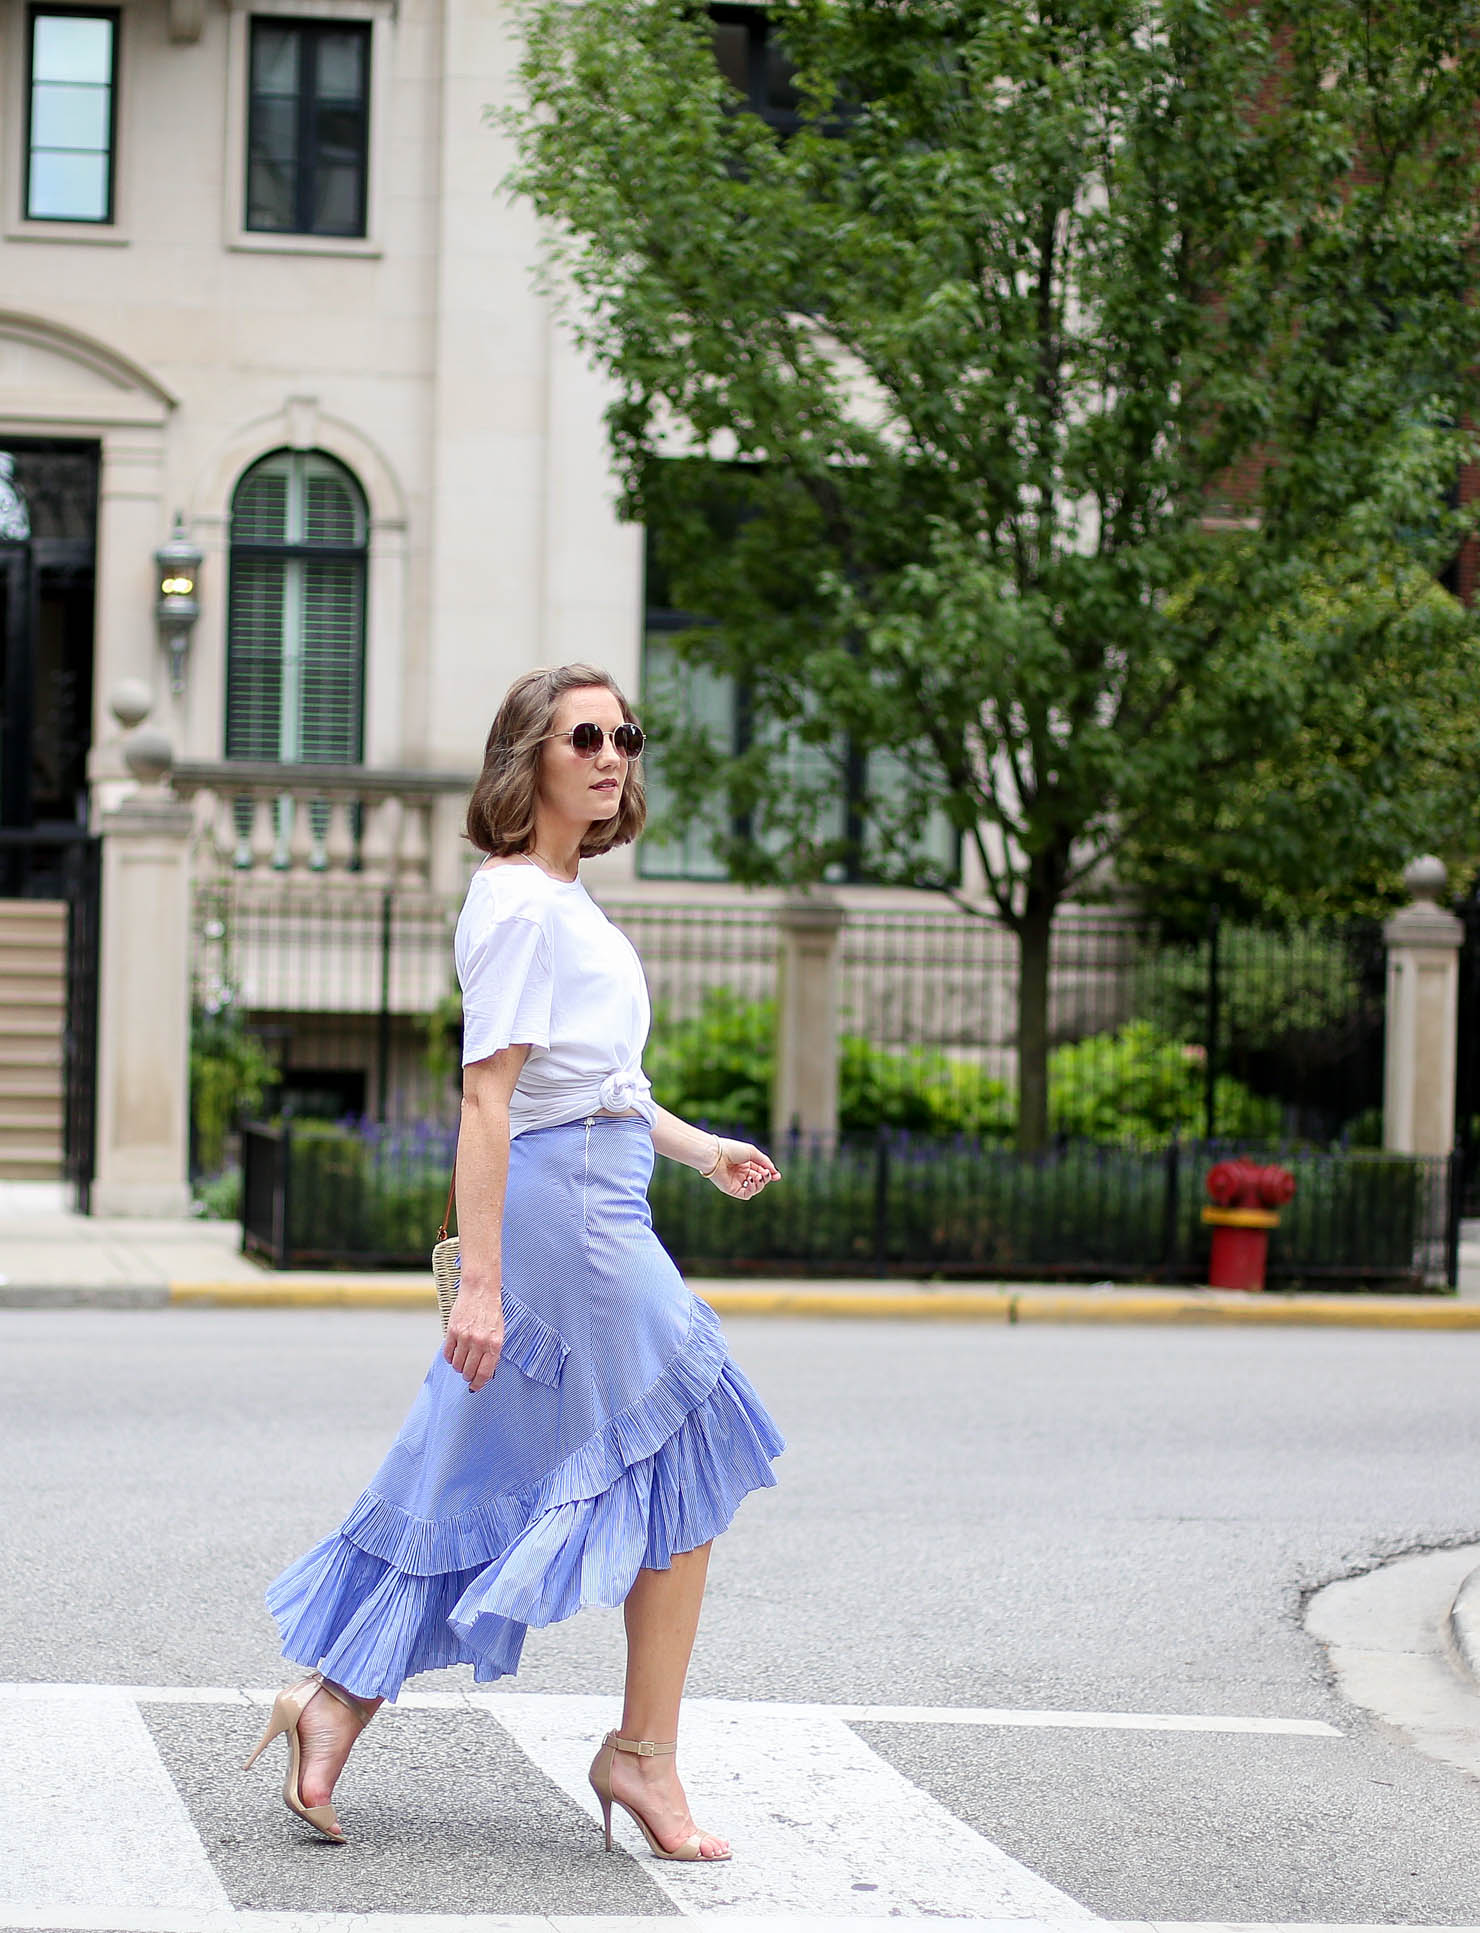 ruffle tiered frill hem skirt, blue stripe the most feminine skirt midi skirt, casual meets dressy frills and a white tee, favorite summer outfit